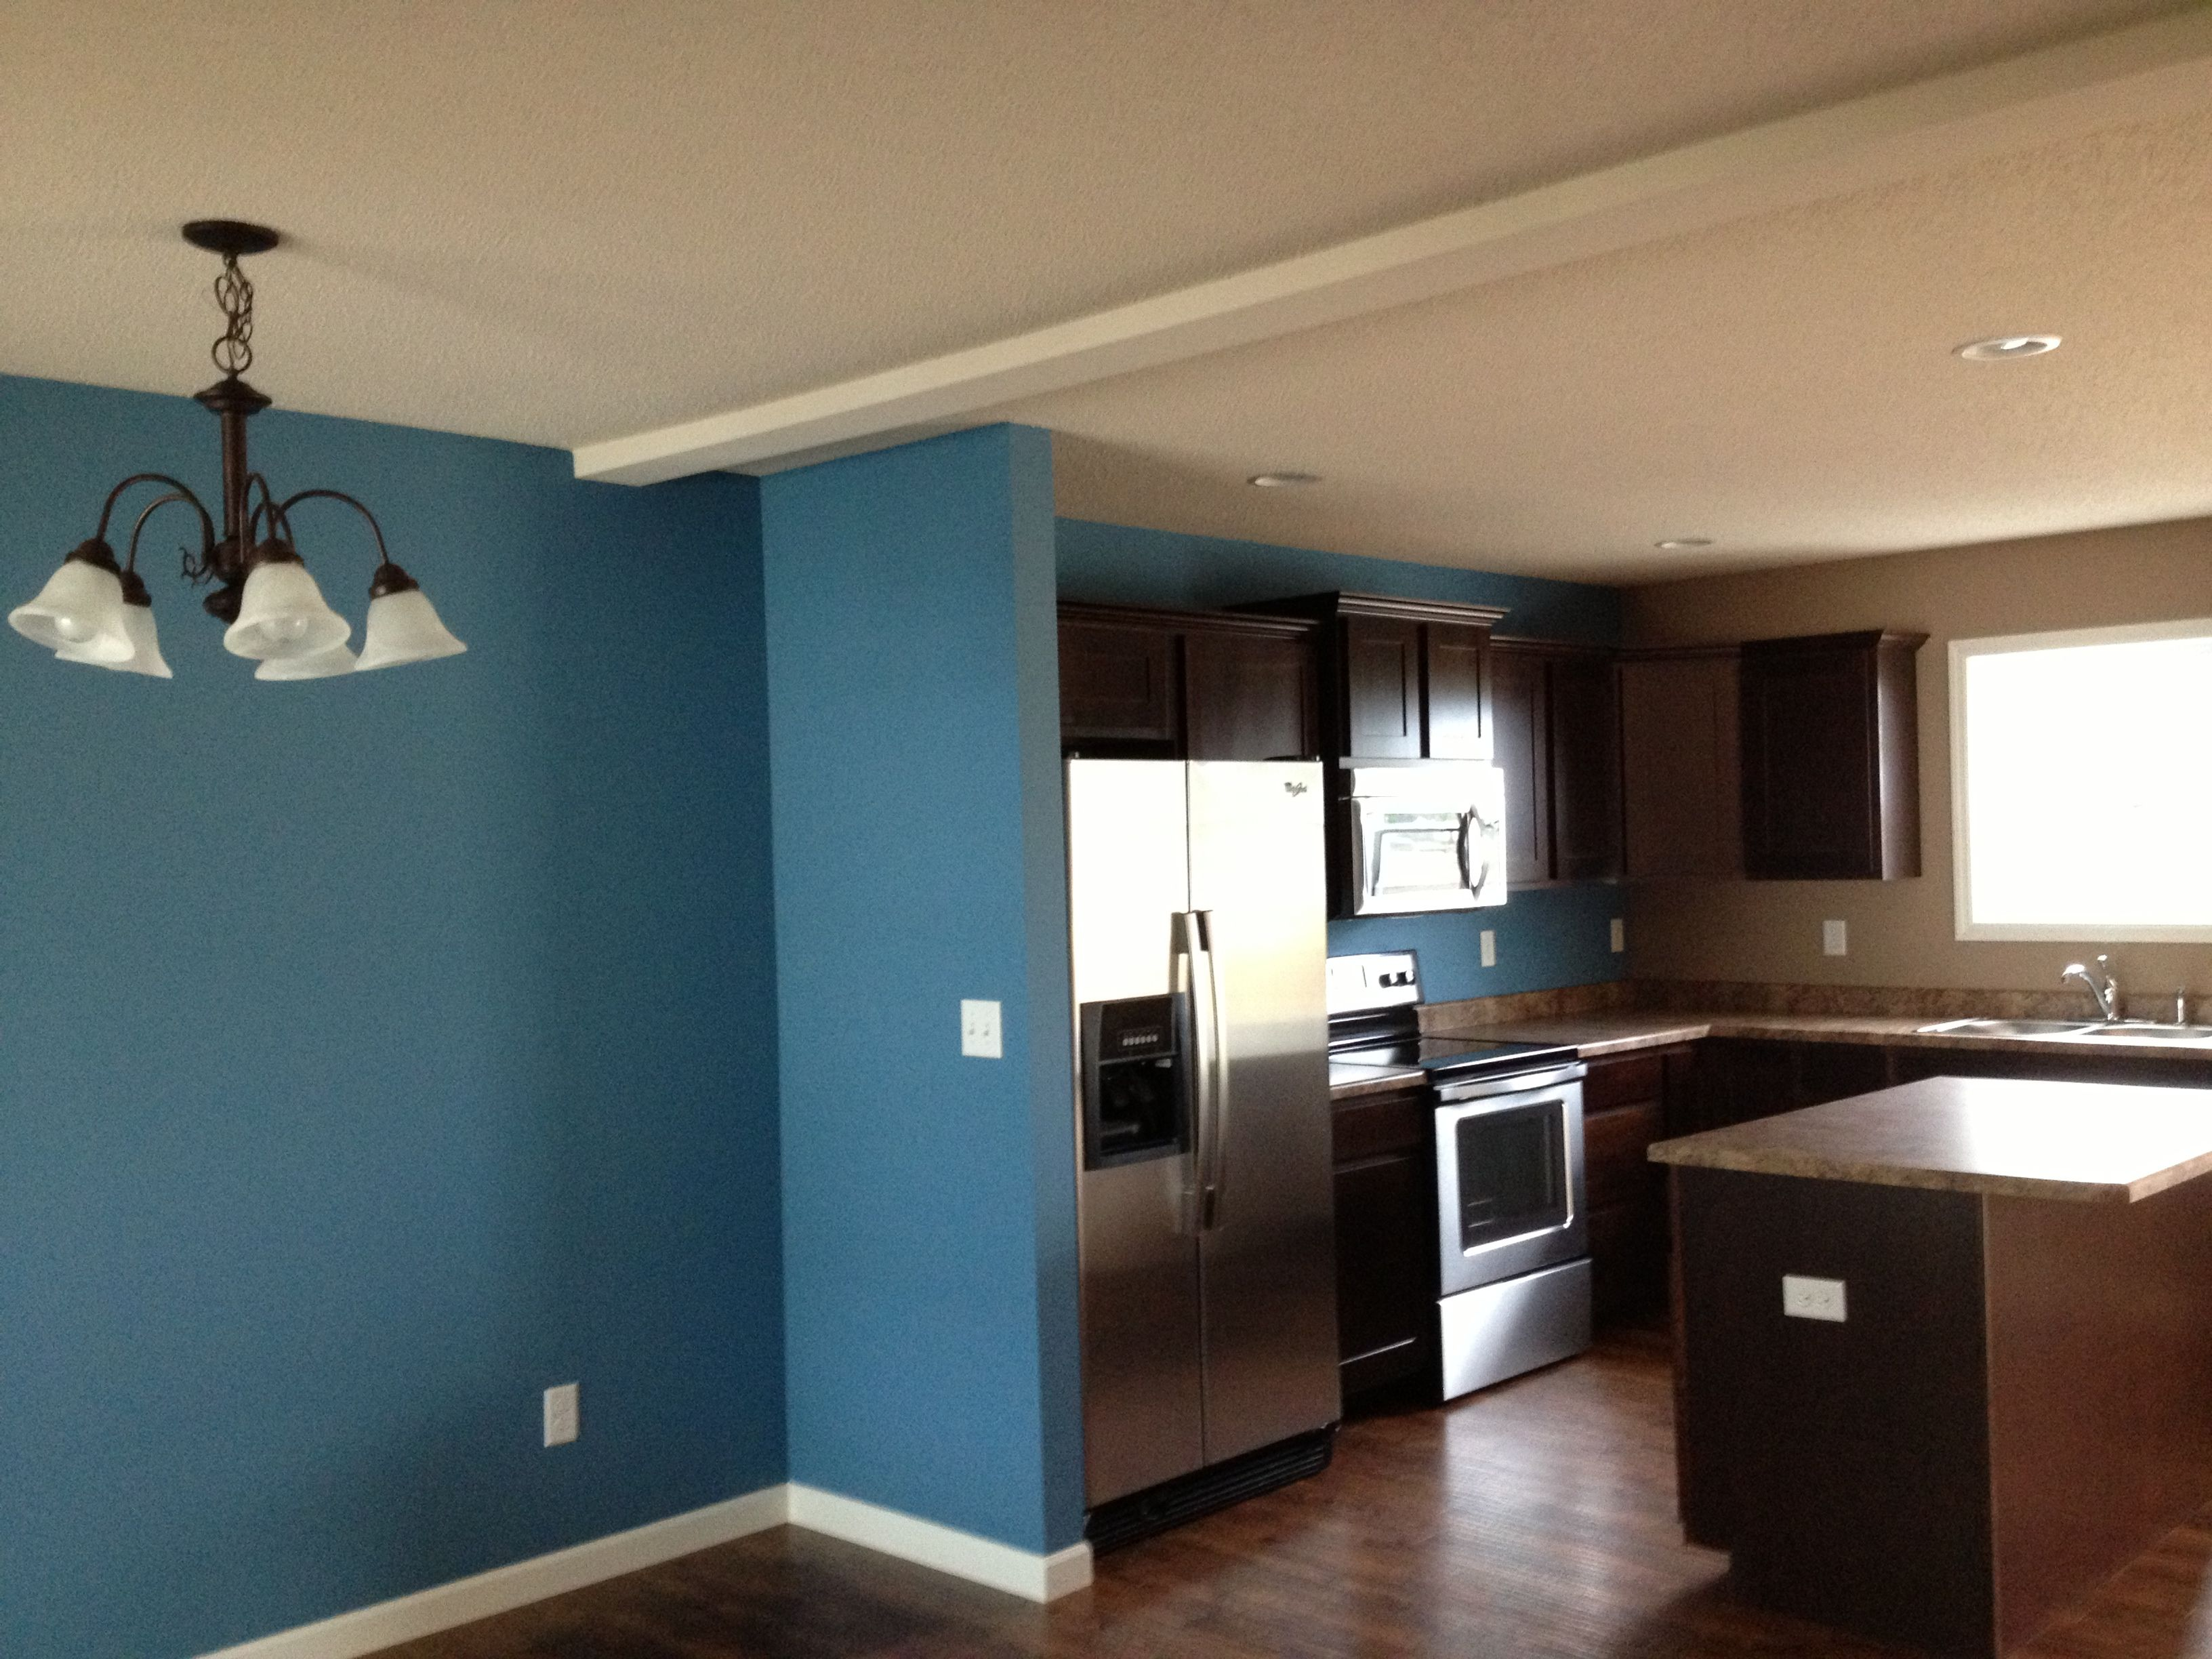 Sherwin Williams Secure Blue Blue kitchen walls, Blue